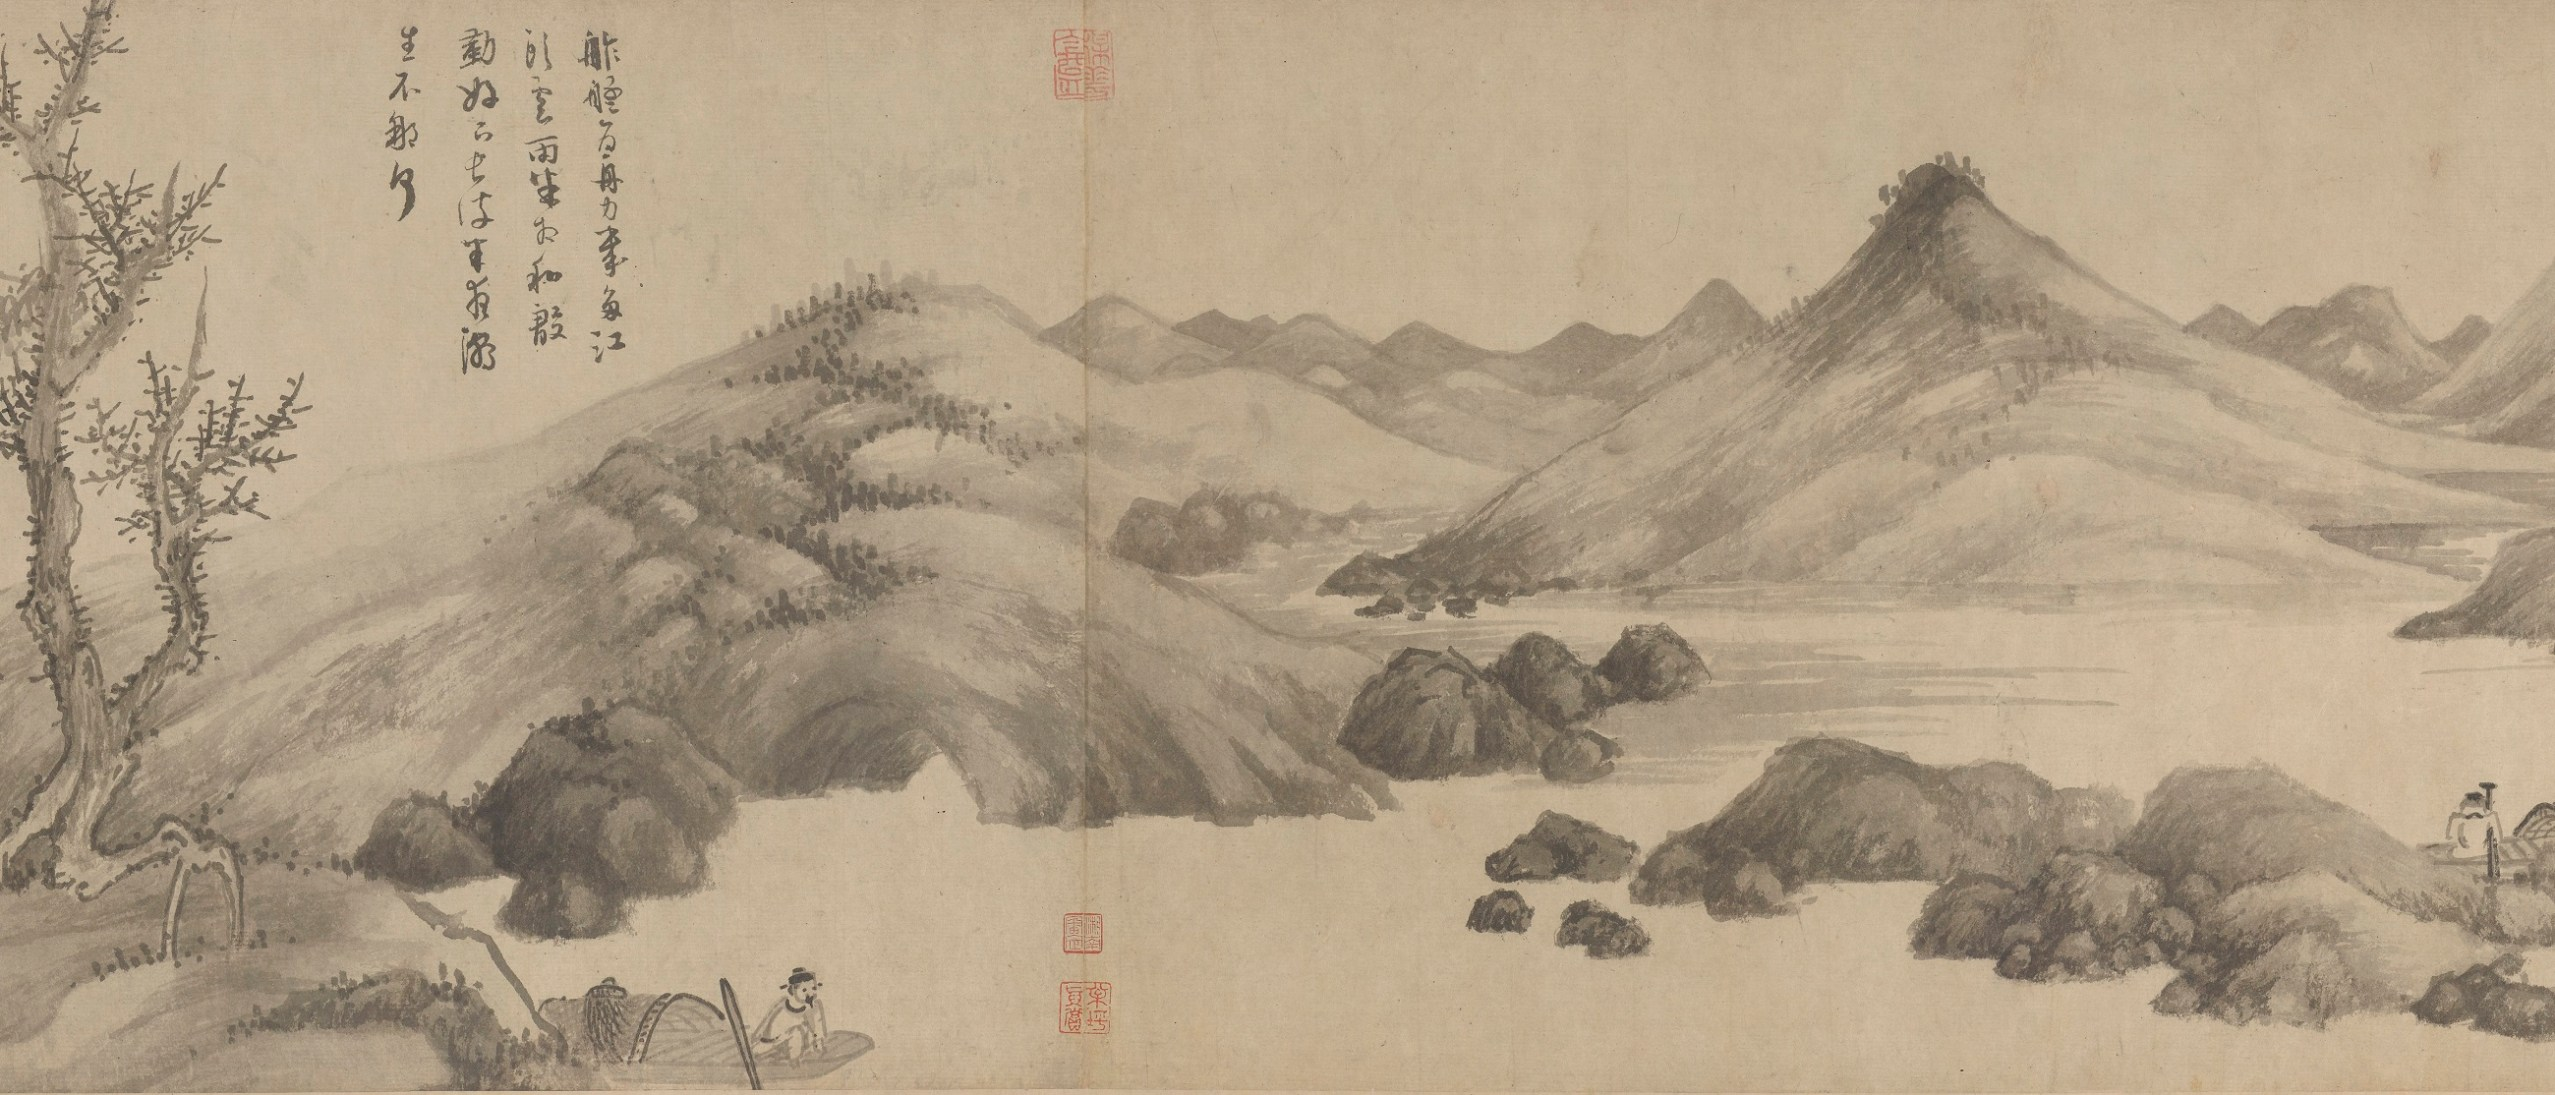 Detail image, Fishermen, after Jing Hao 仿荊浩〈漁父圖〉; Wu Zhen 吳鎮 (1280-1354); China, Yuan dynasty, ca. 1341; Handscroll; ink on paper; Purchase; F1937.12